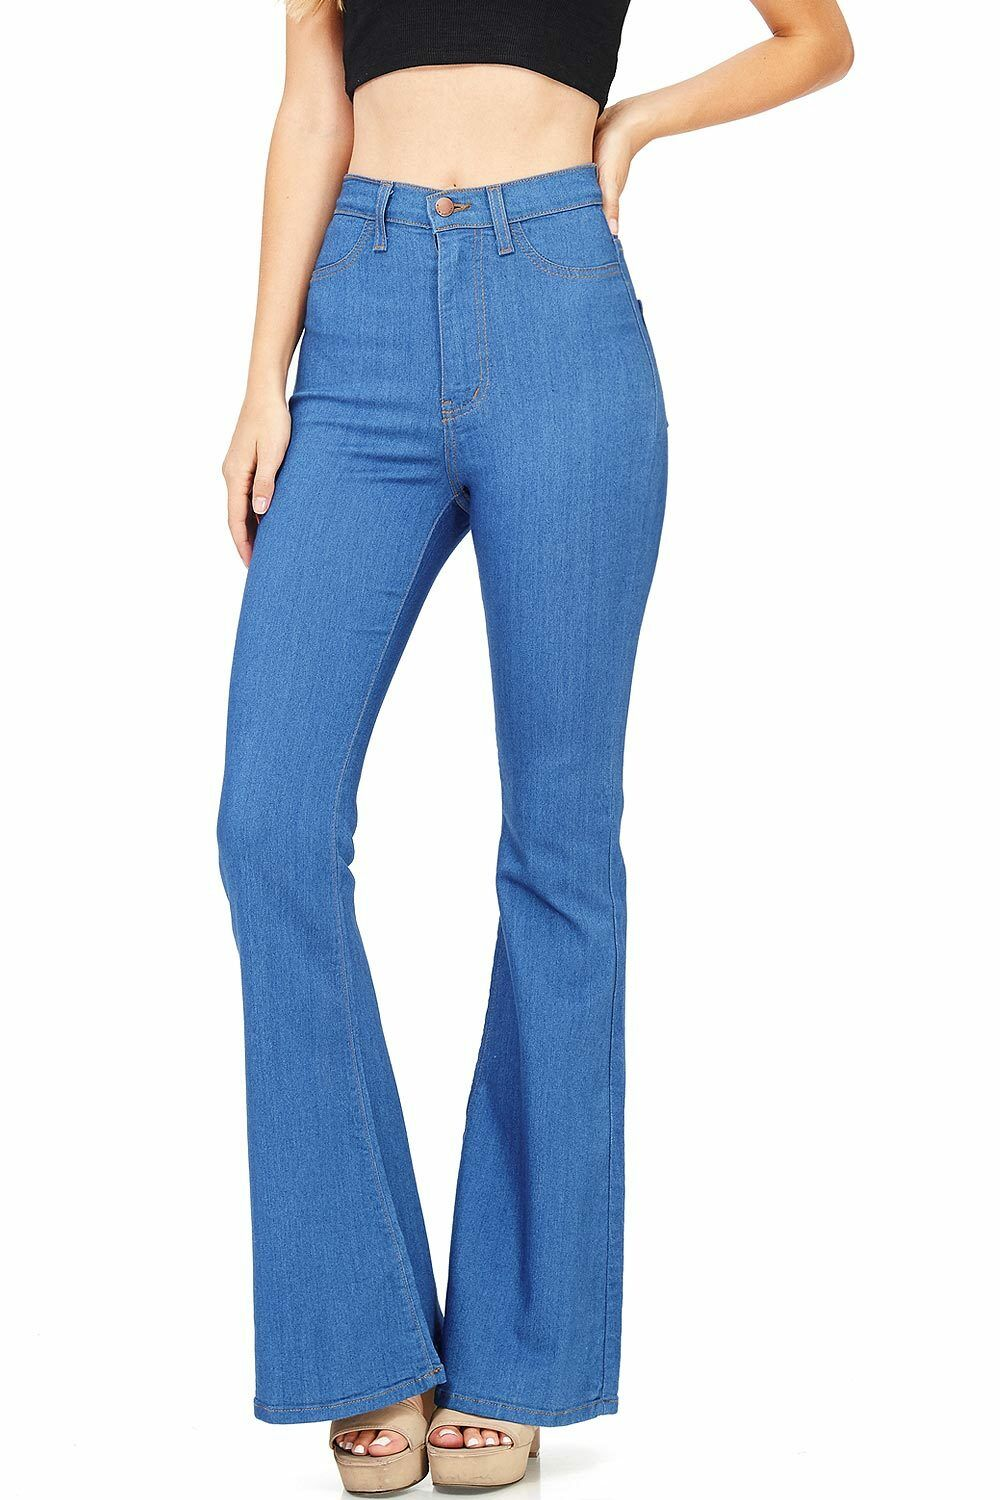 Vibrant New Women's Classic Fit Denim High Rise Flared Bell